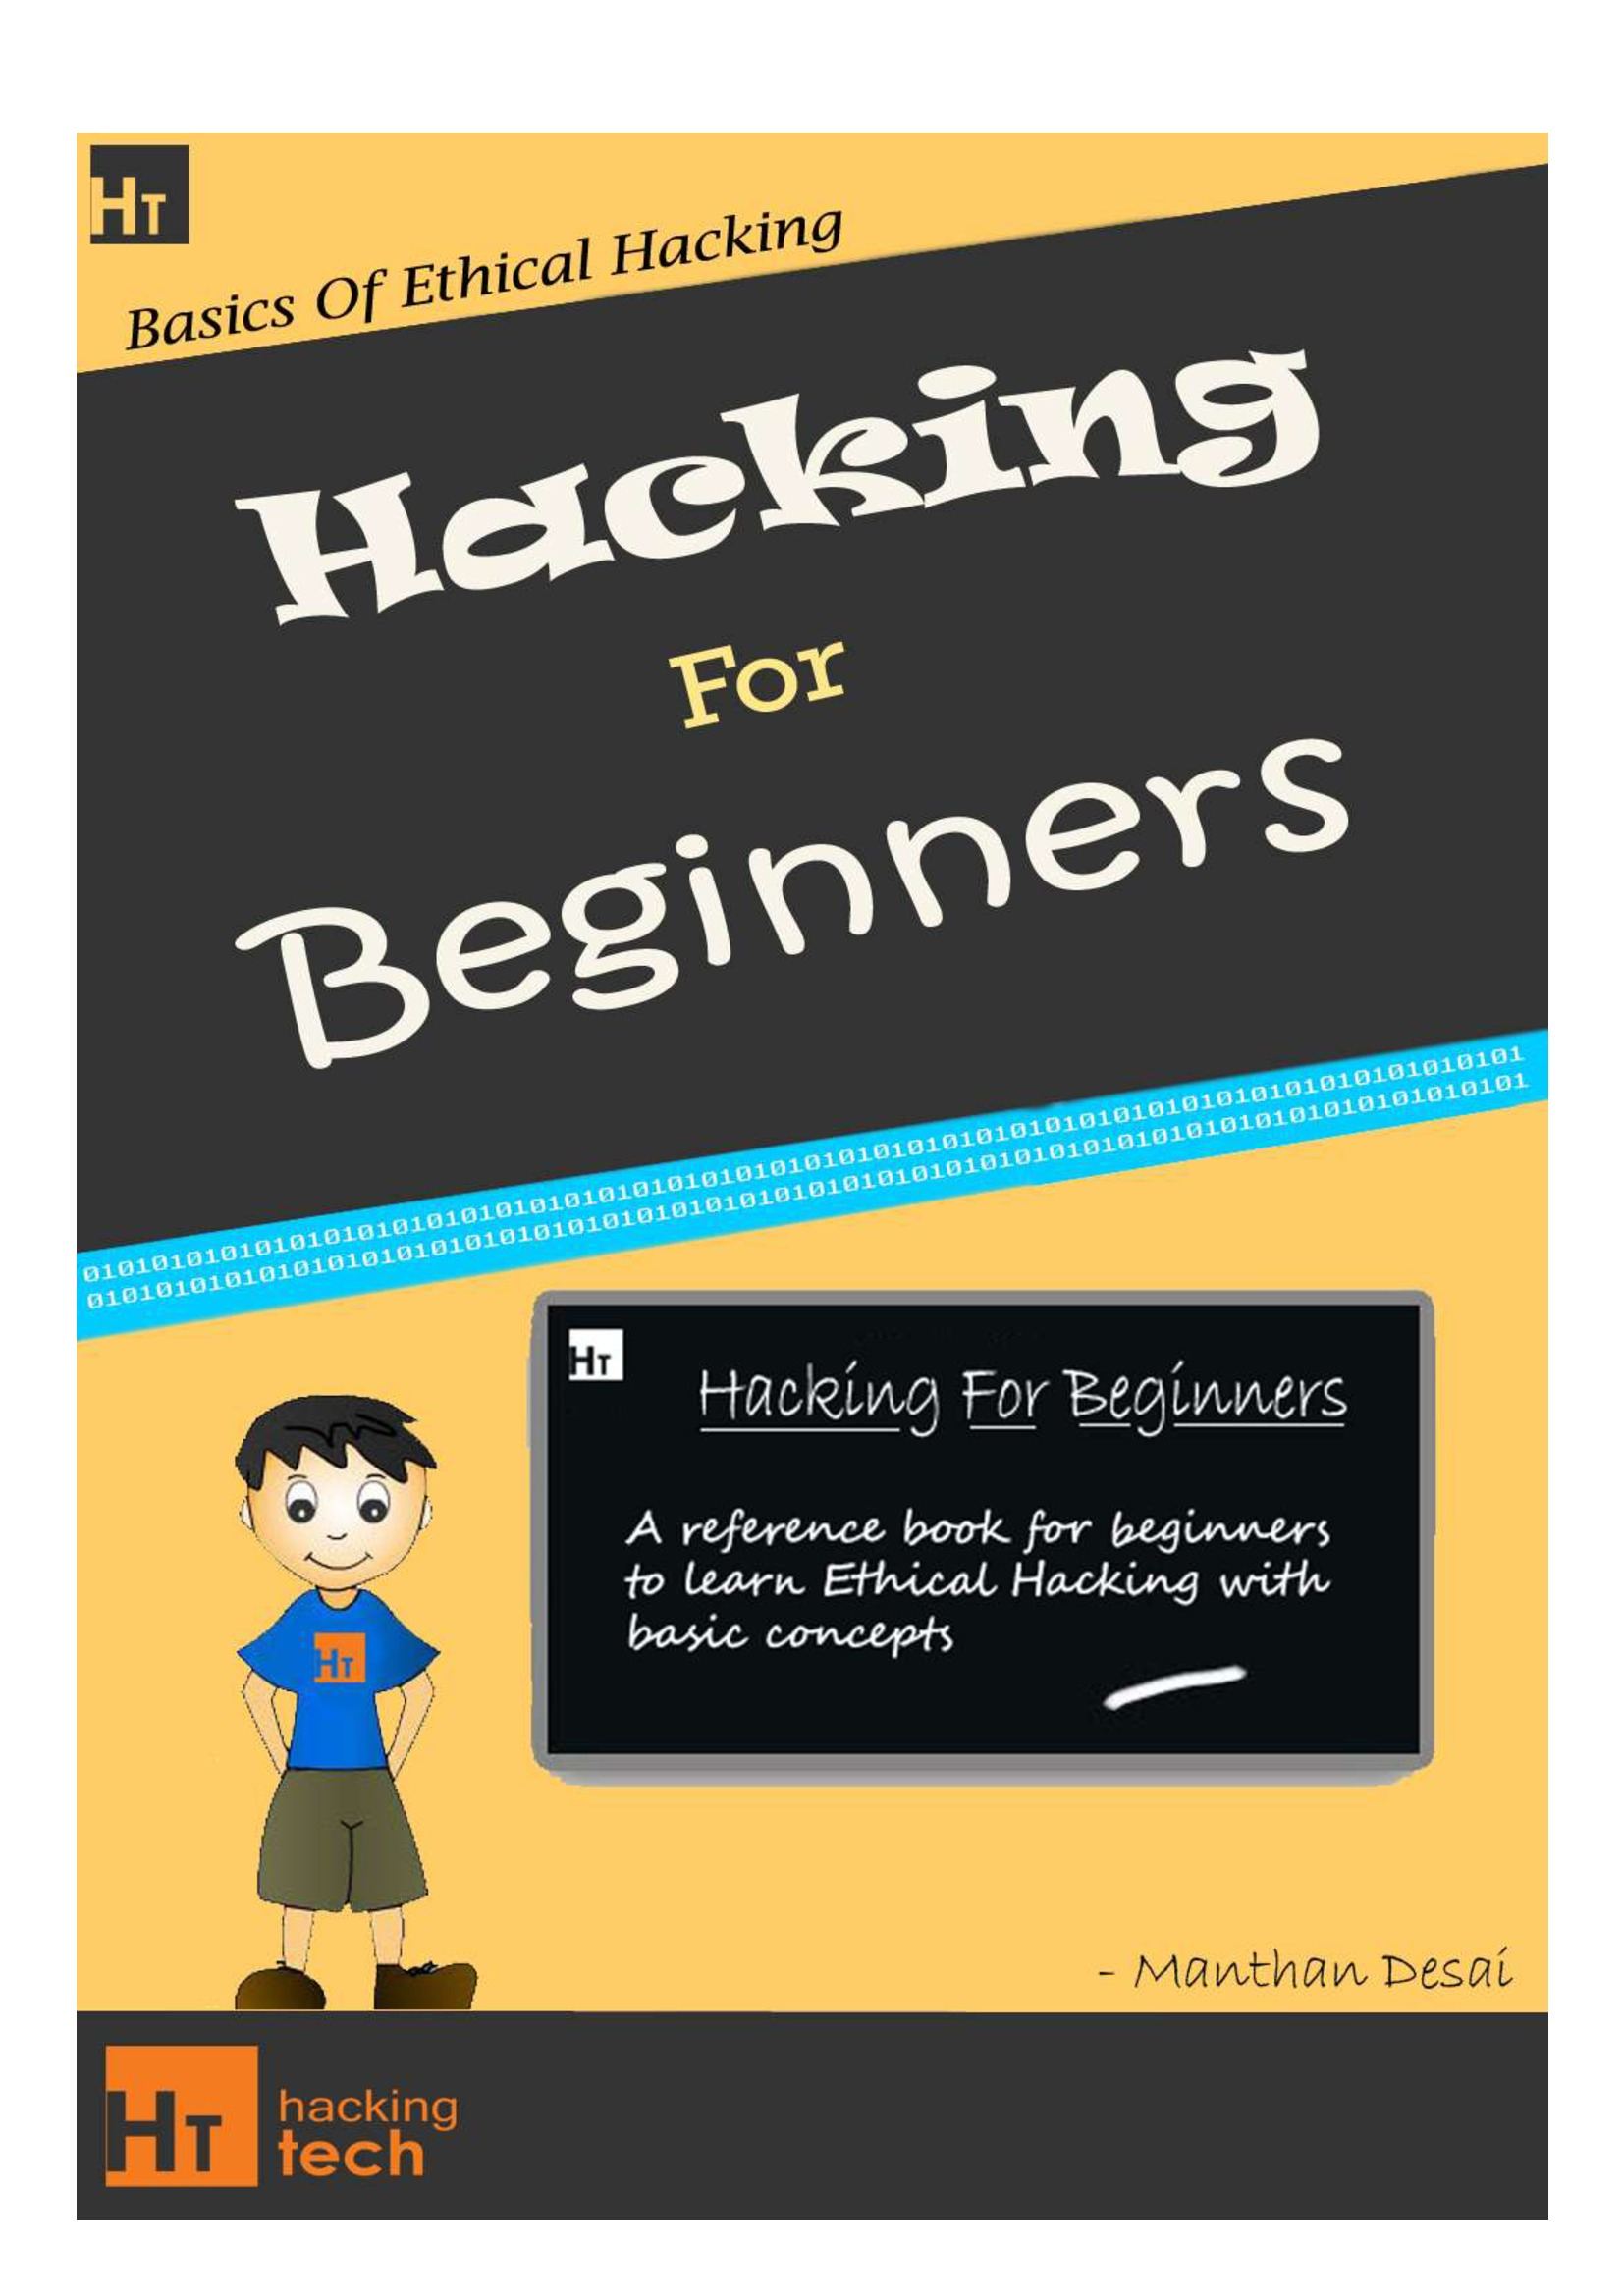 Hacking For Beginners - a beginners guide for learning